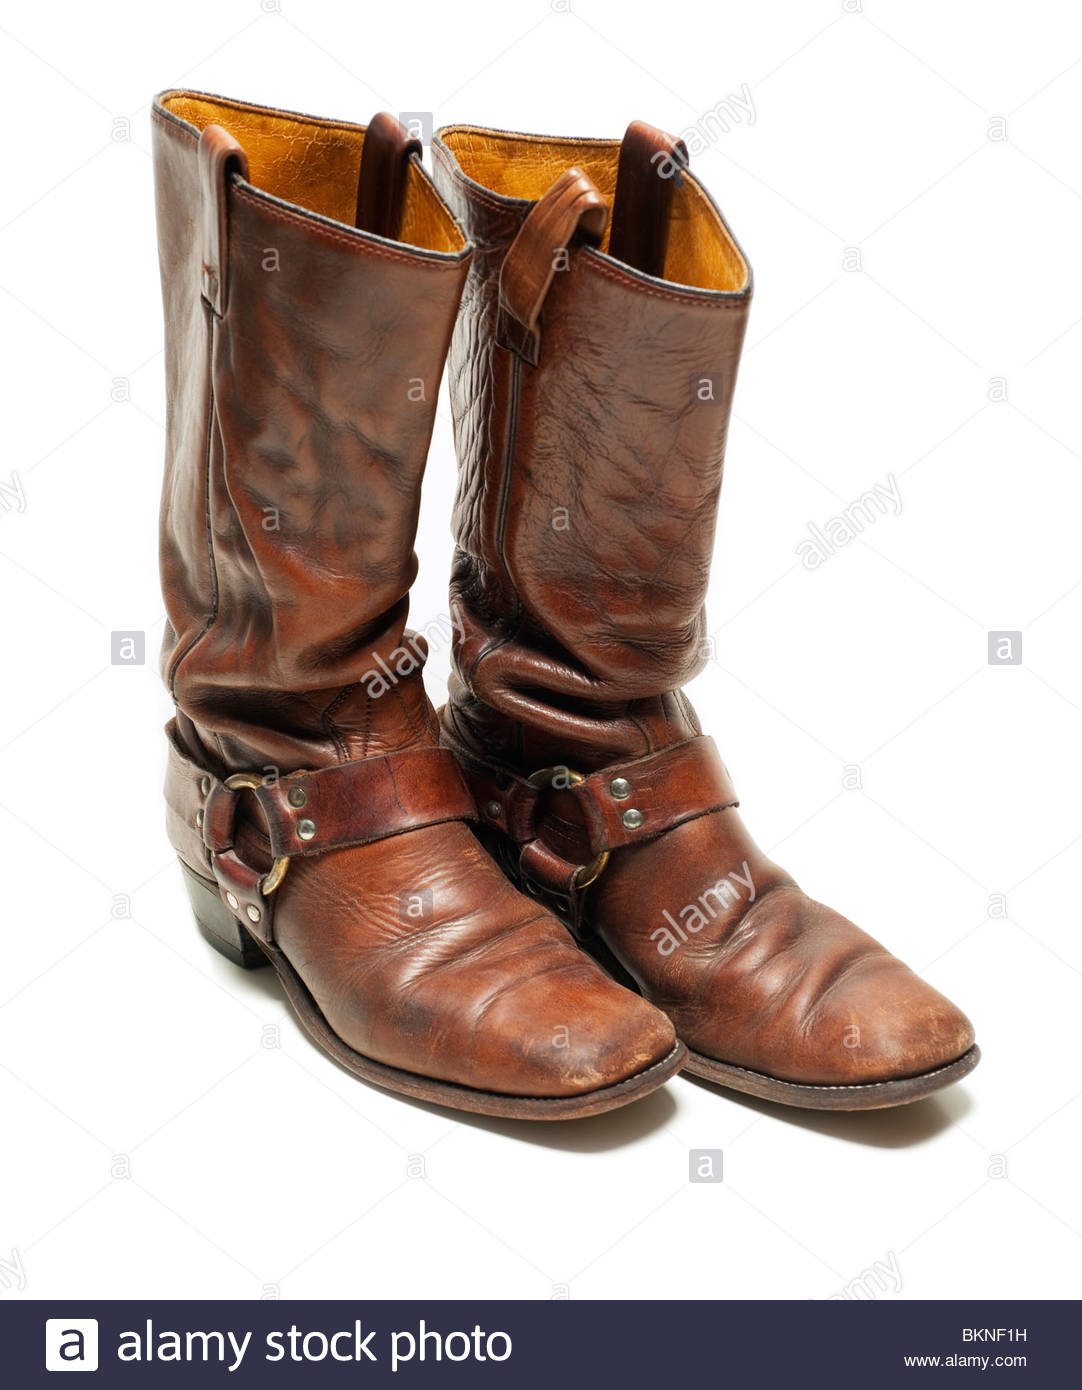 7e36b498f5f Vintage Distressed Leather Harness Boots from the late 1960 s to early  1970 s Hippie Bohemian style fashion boot